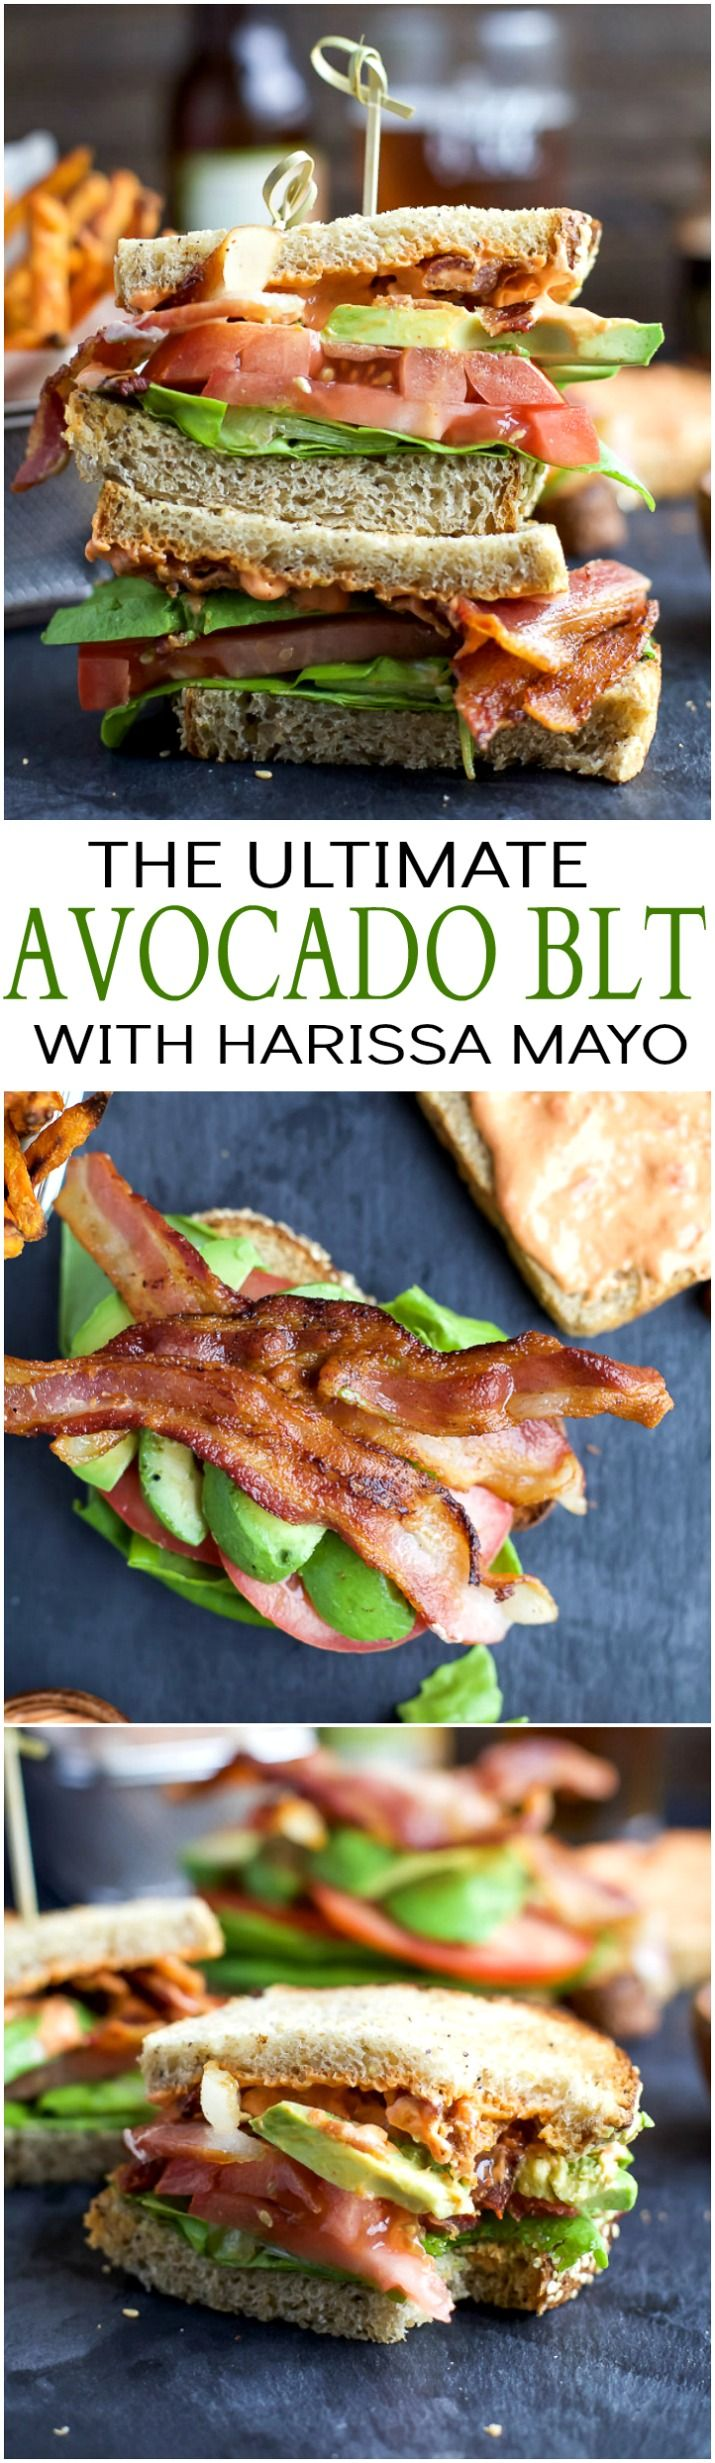 The Ultimate Avocado BLT slathered with a Harissa Mayo that takes this sandwich over the top... that and it's BACON and AVOCADO people! | joyfulhealthyeats...